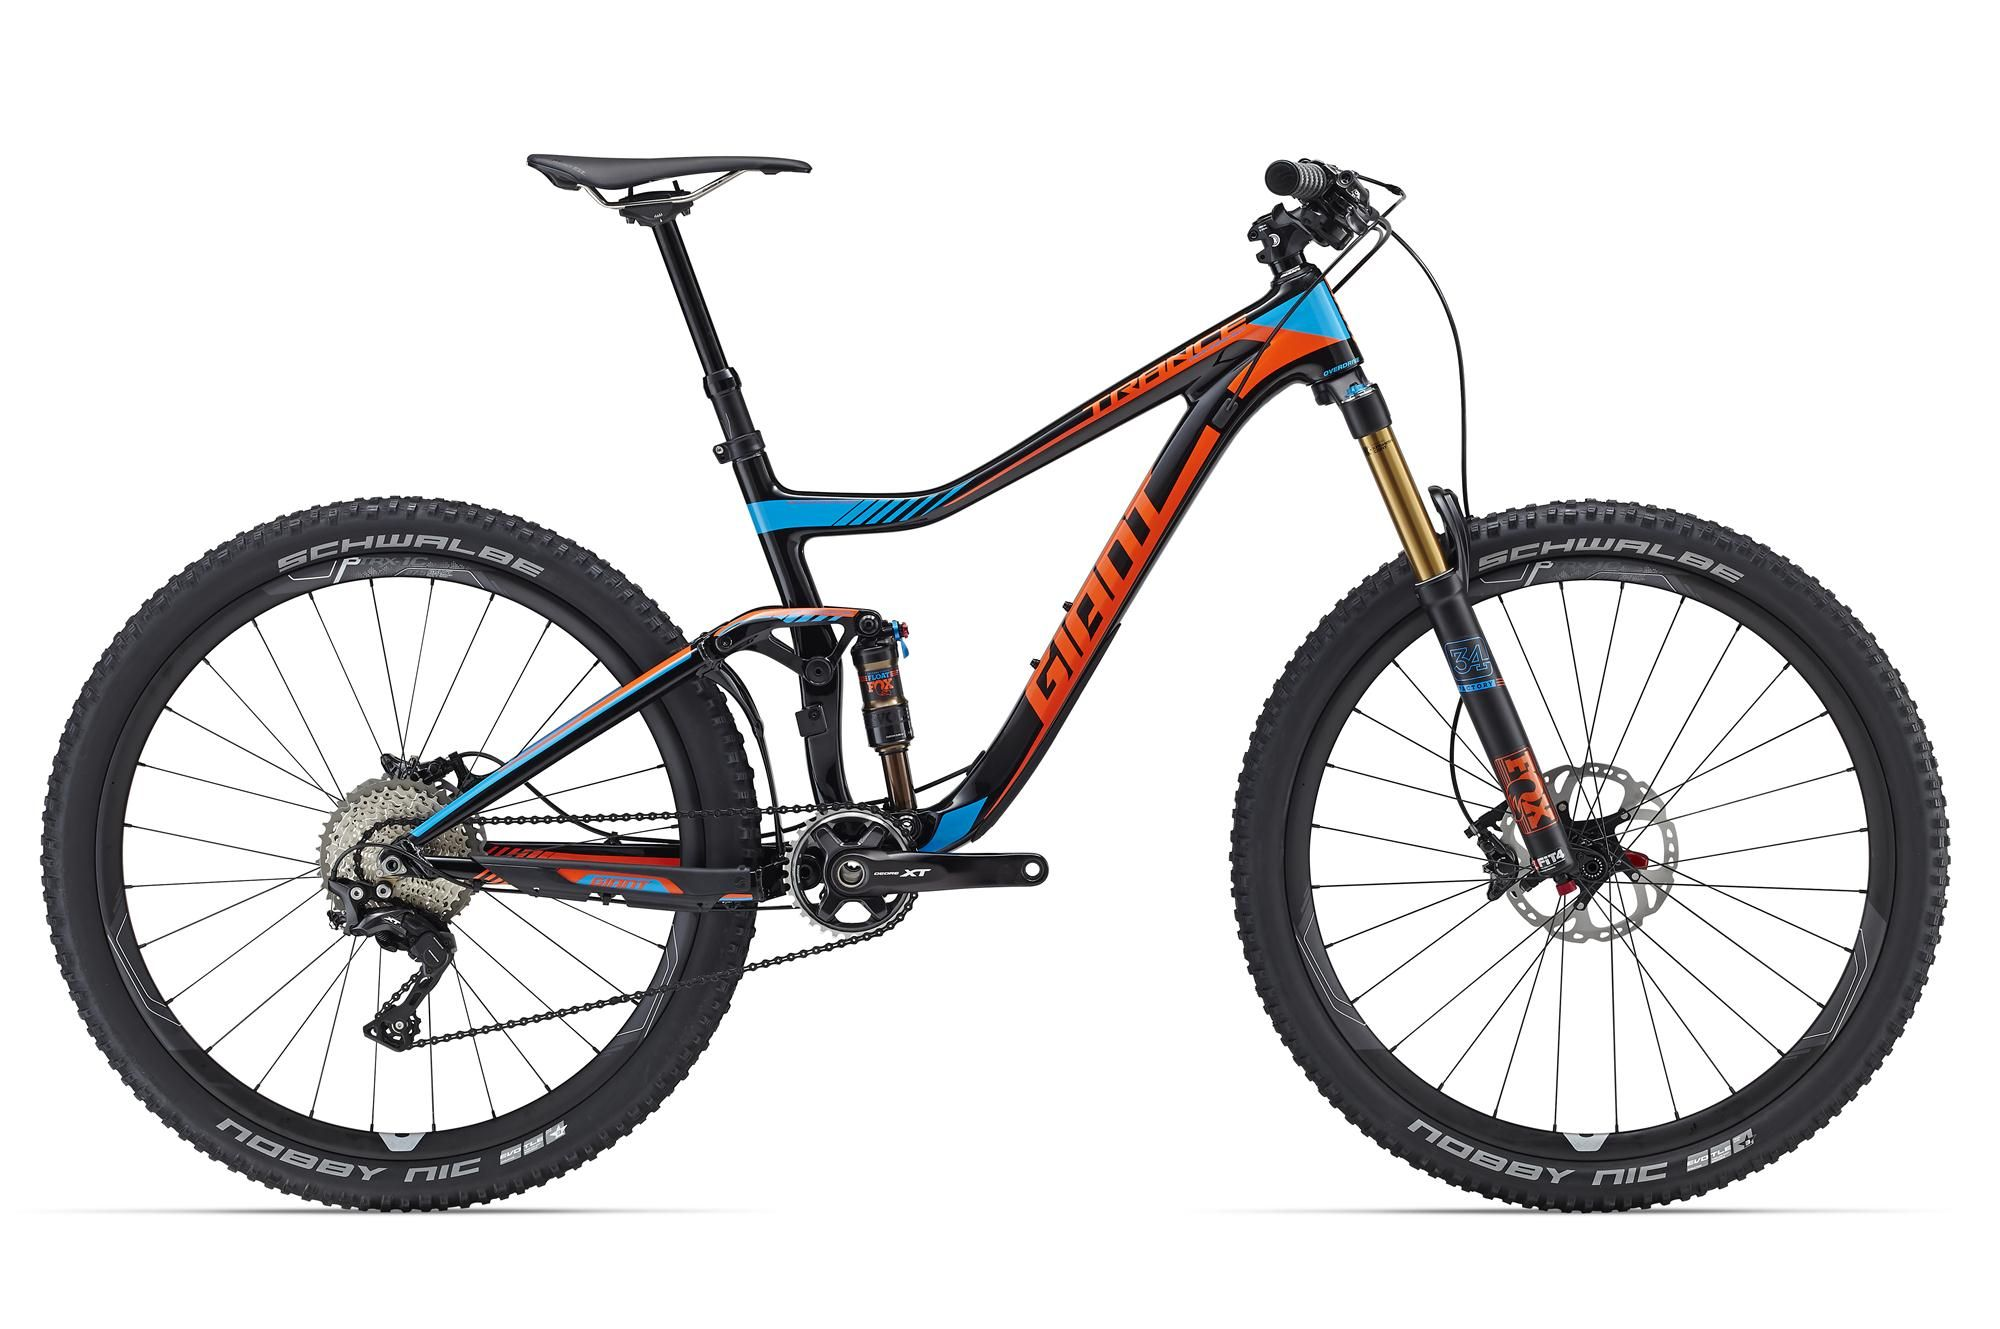 Велосипед Giant Trance Advanced 27.5 1 2016 велосипед giant trinity advanced pro 0 2016